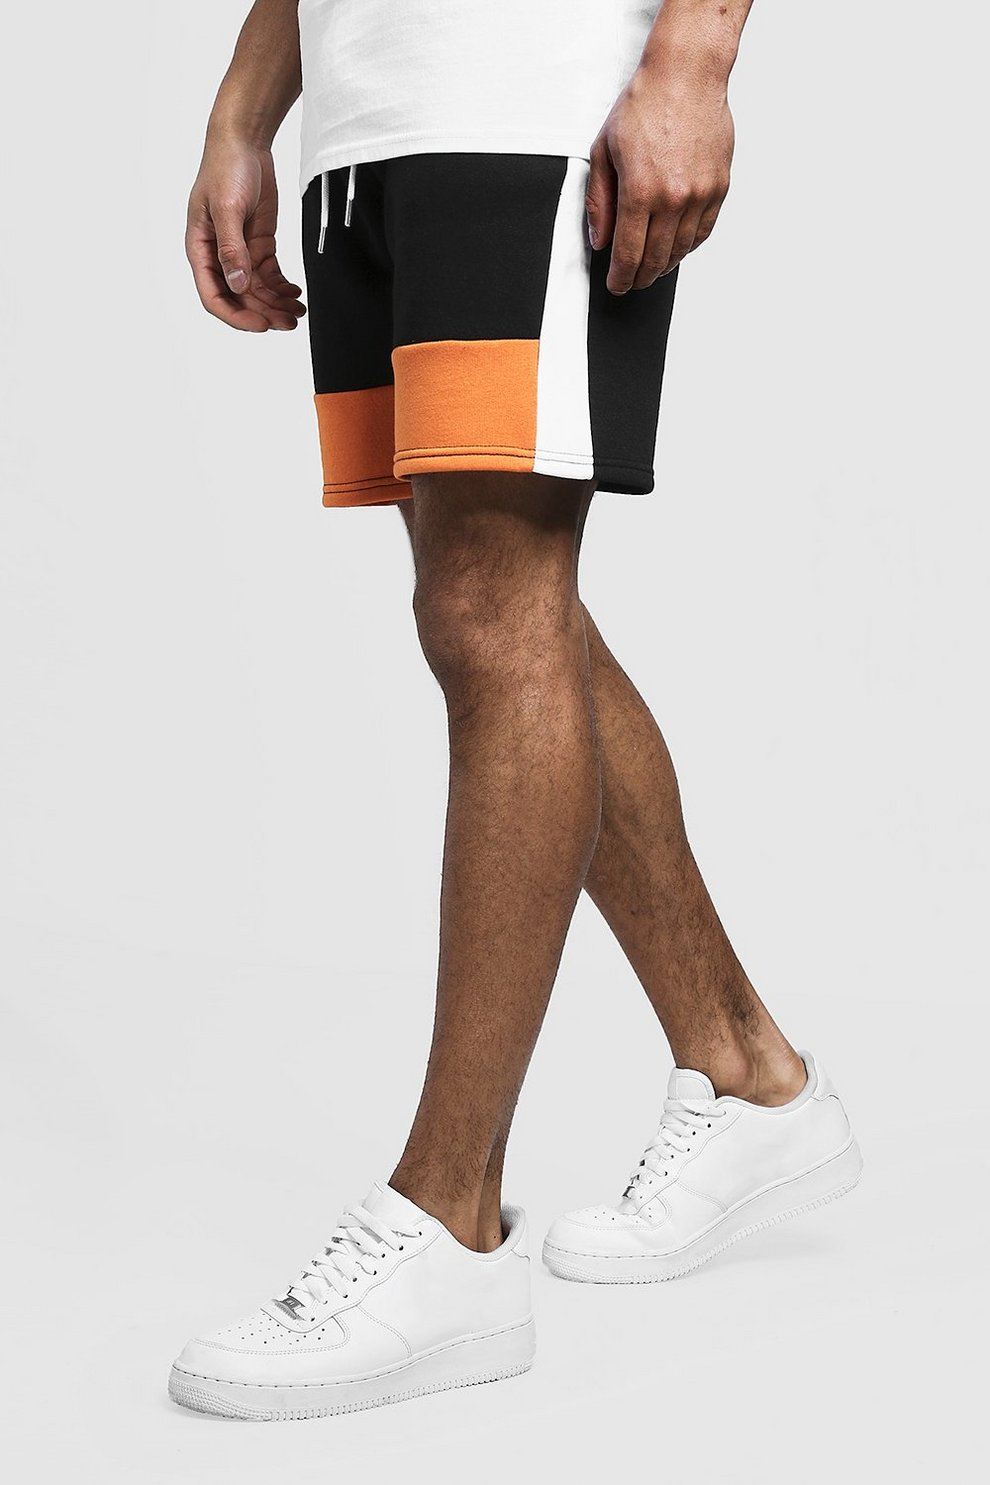 e6a74e7fc0 Mens Orange Colour Block MAN Mid Length Short